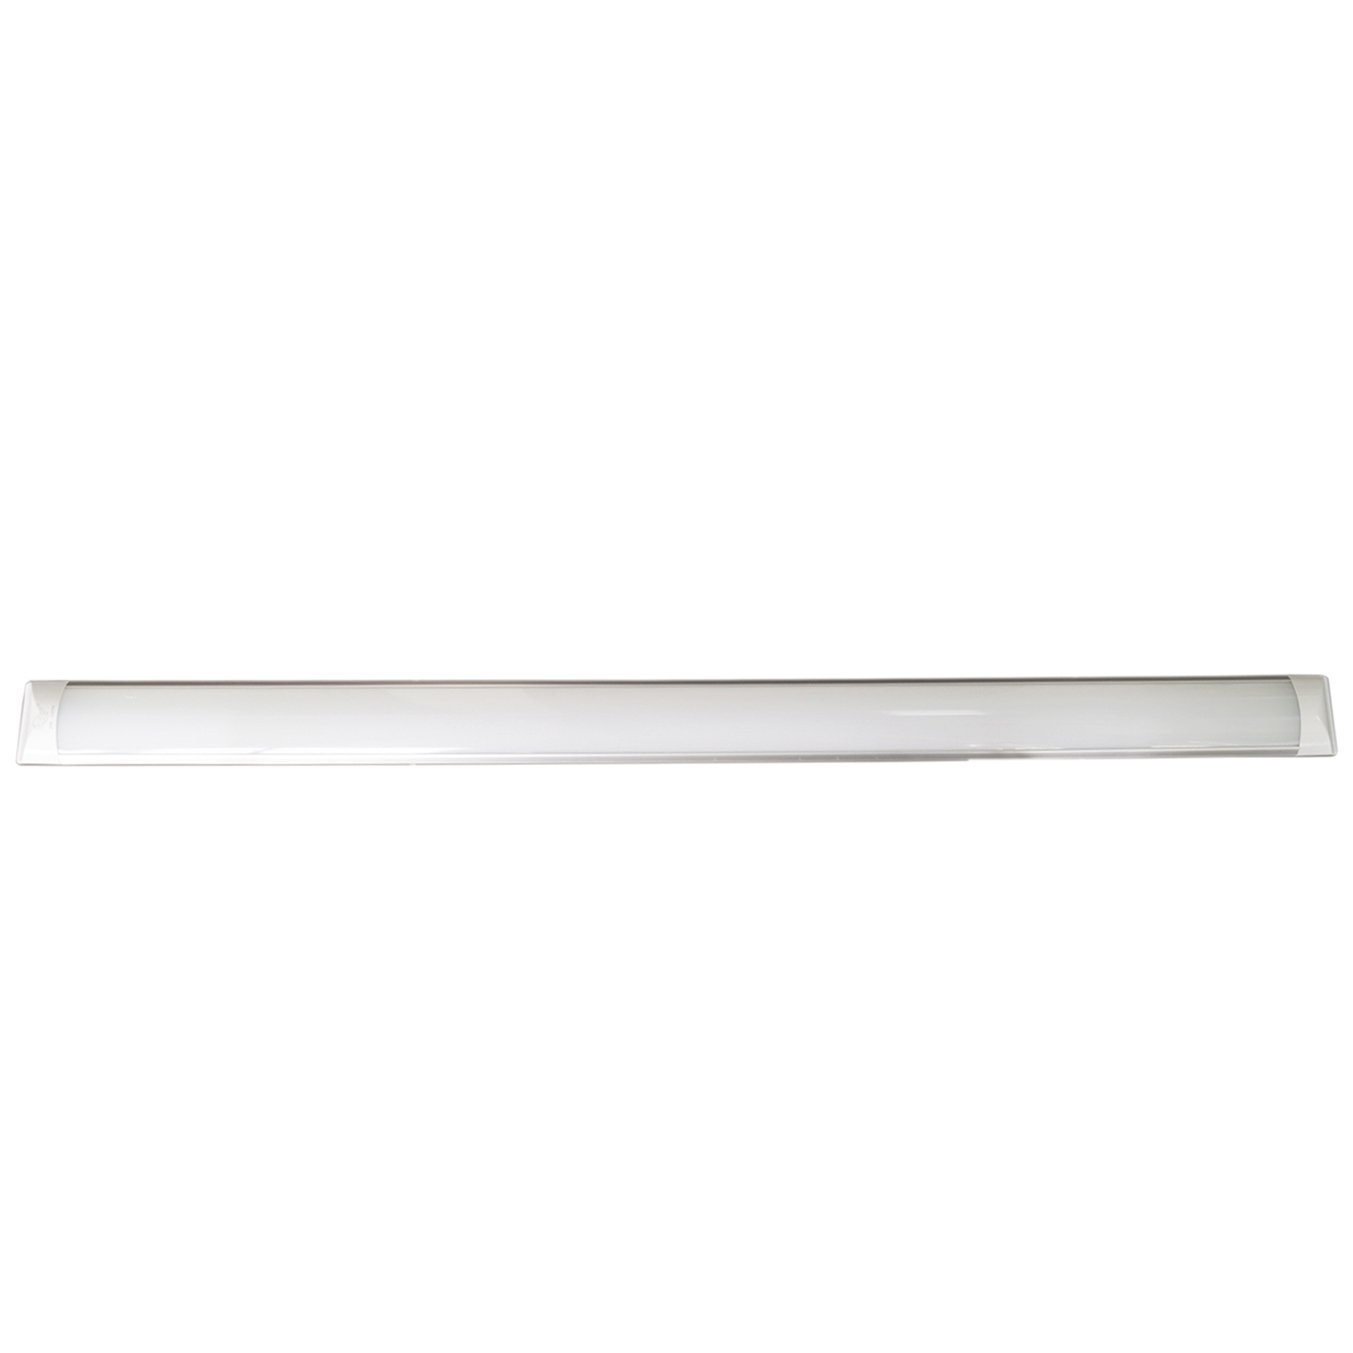 Plafoniera led da soffitto 40W 4000k IP65 1200mm